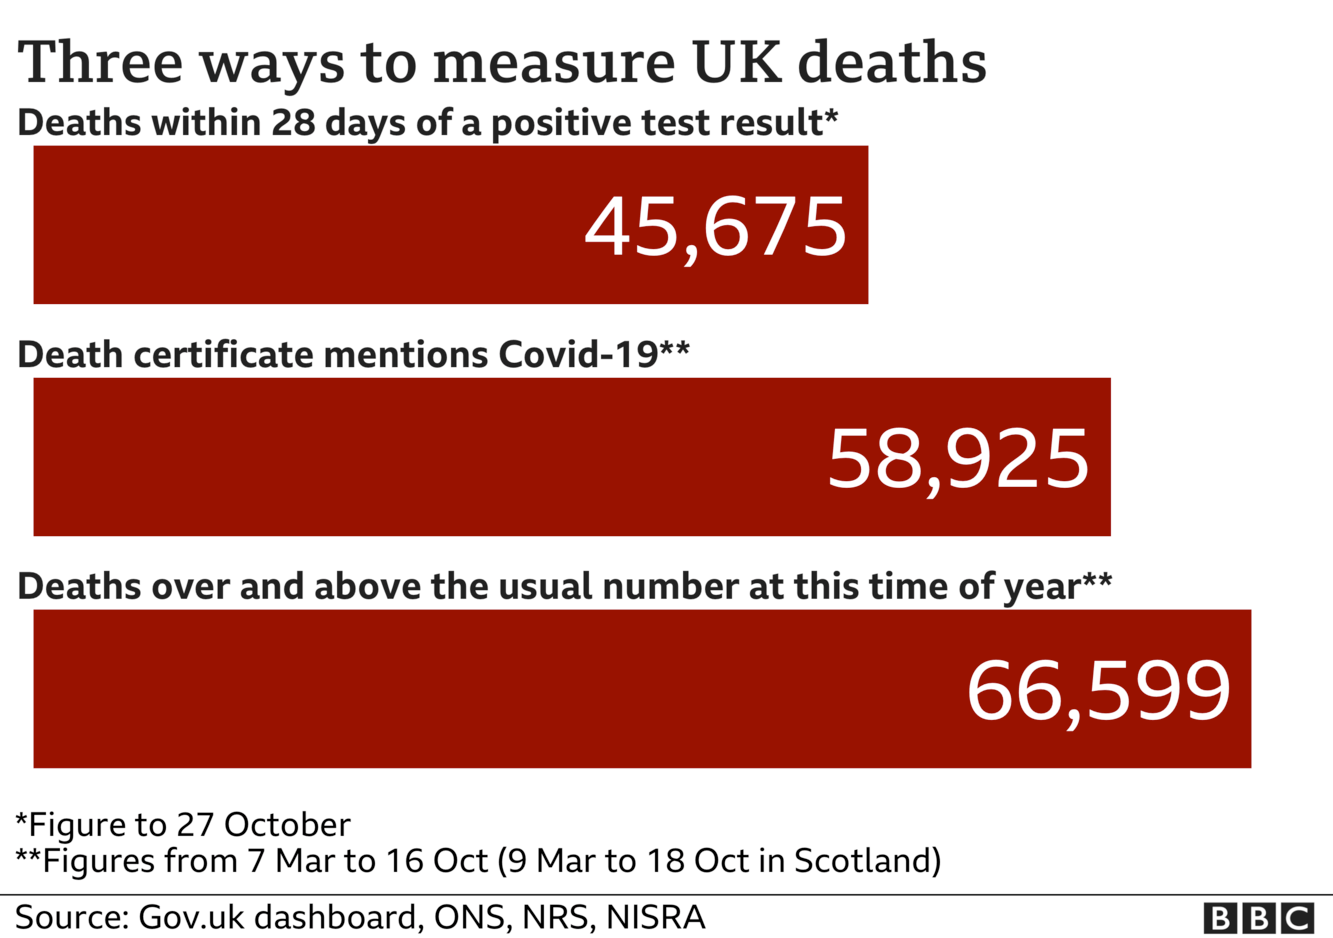 Chart shows three ways of measuring coronavirus deaths - government statistics count everyone who dies withint 28 days of a positive test, the total is now 45,675, ONS stats include everyone where coronavirus was mentioned on the death certificate and that total is now 58,925, the final total includes all excess deaths over and above the usual number and that is now 66,599, updated 27 Oct